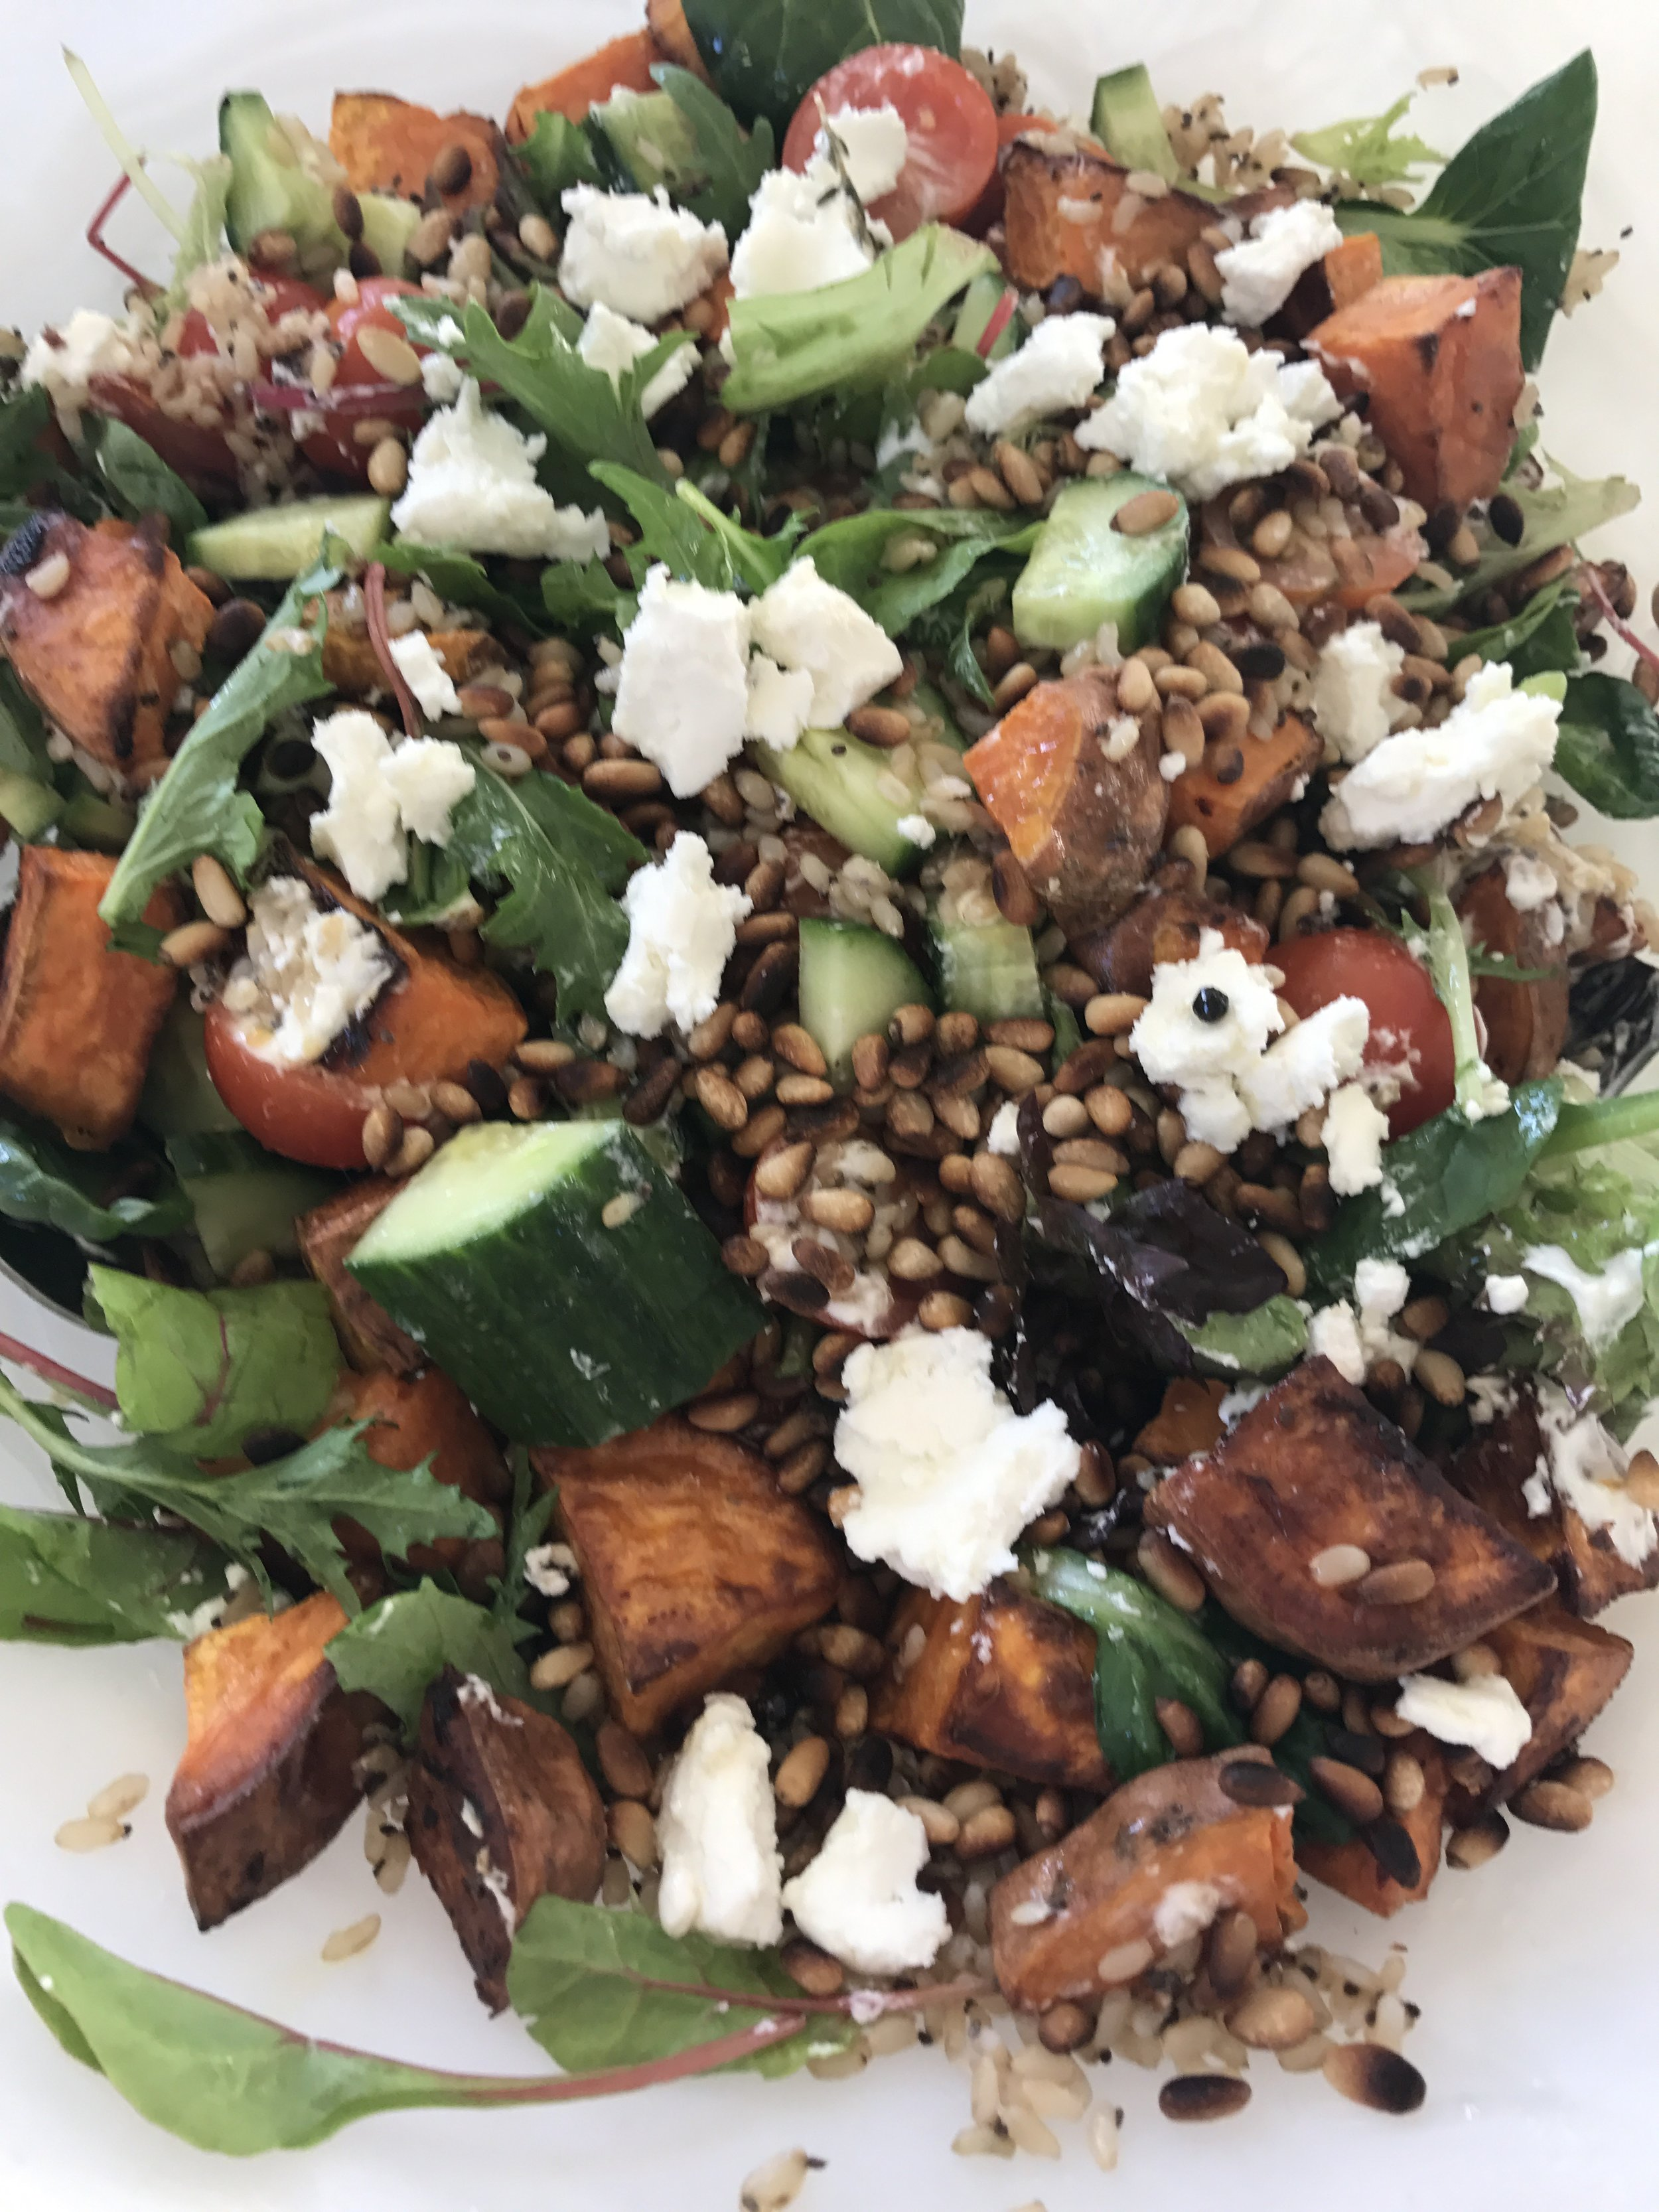 When you arrive home, remove sweet potato from oven and allow to cool. Toast the pine nuts and cook rice in microwave for 90 seconds. Chop tomatoes, toss ingredients into bowl and enjoy. I use a touch of the oil from the goats cheese as a dressing.